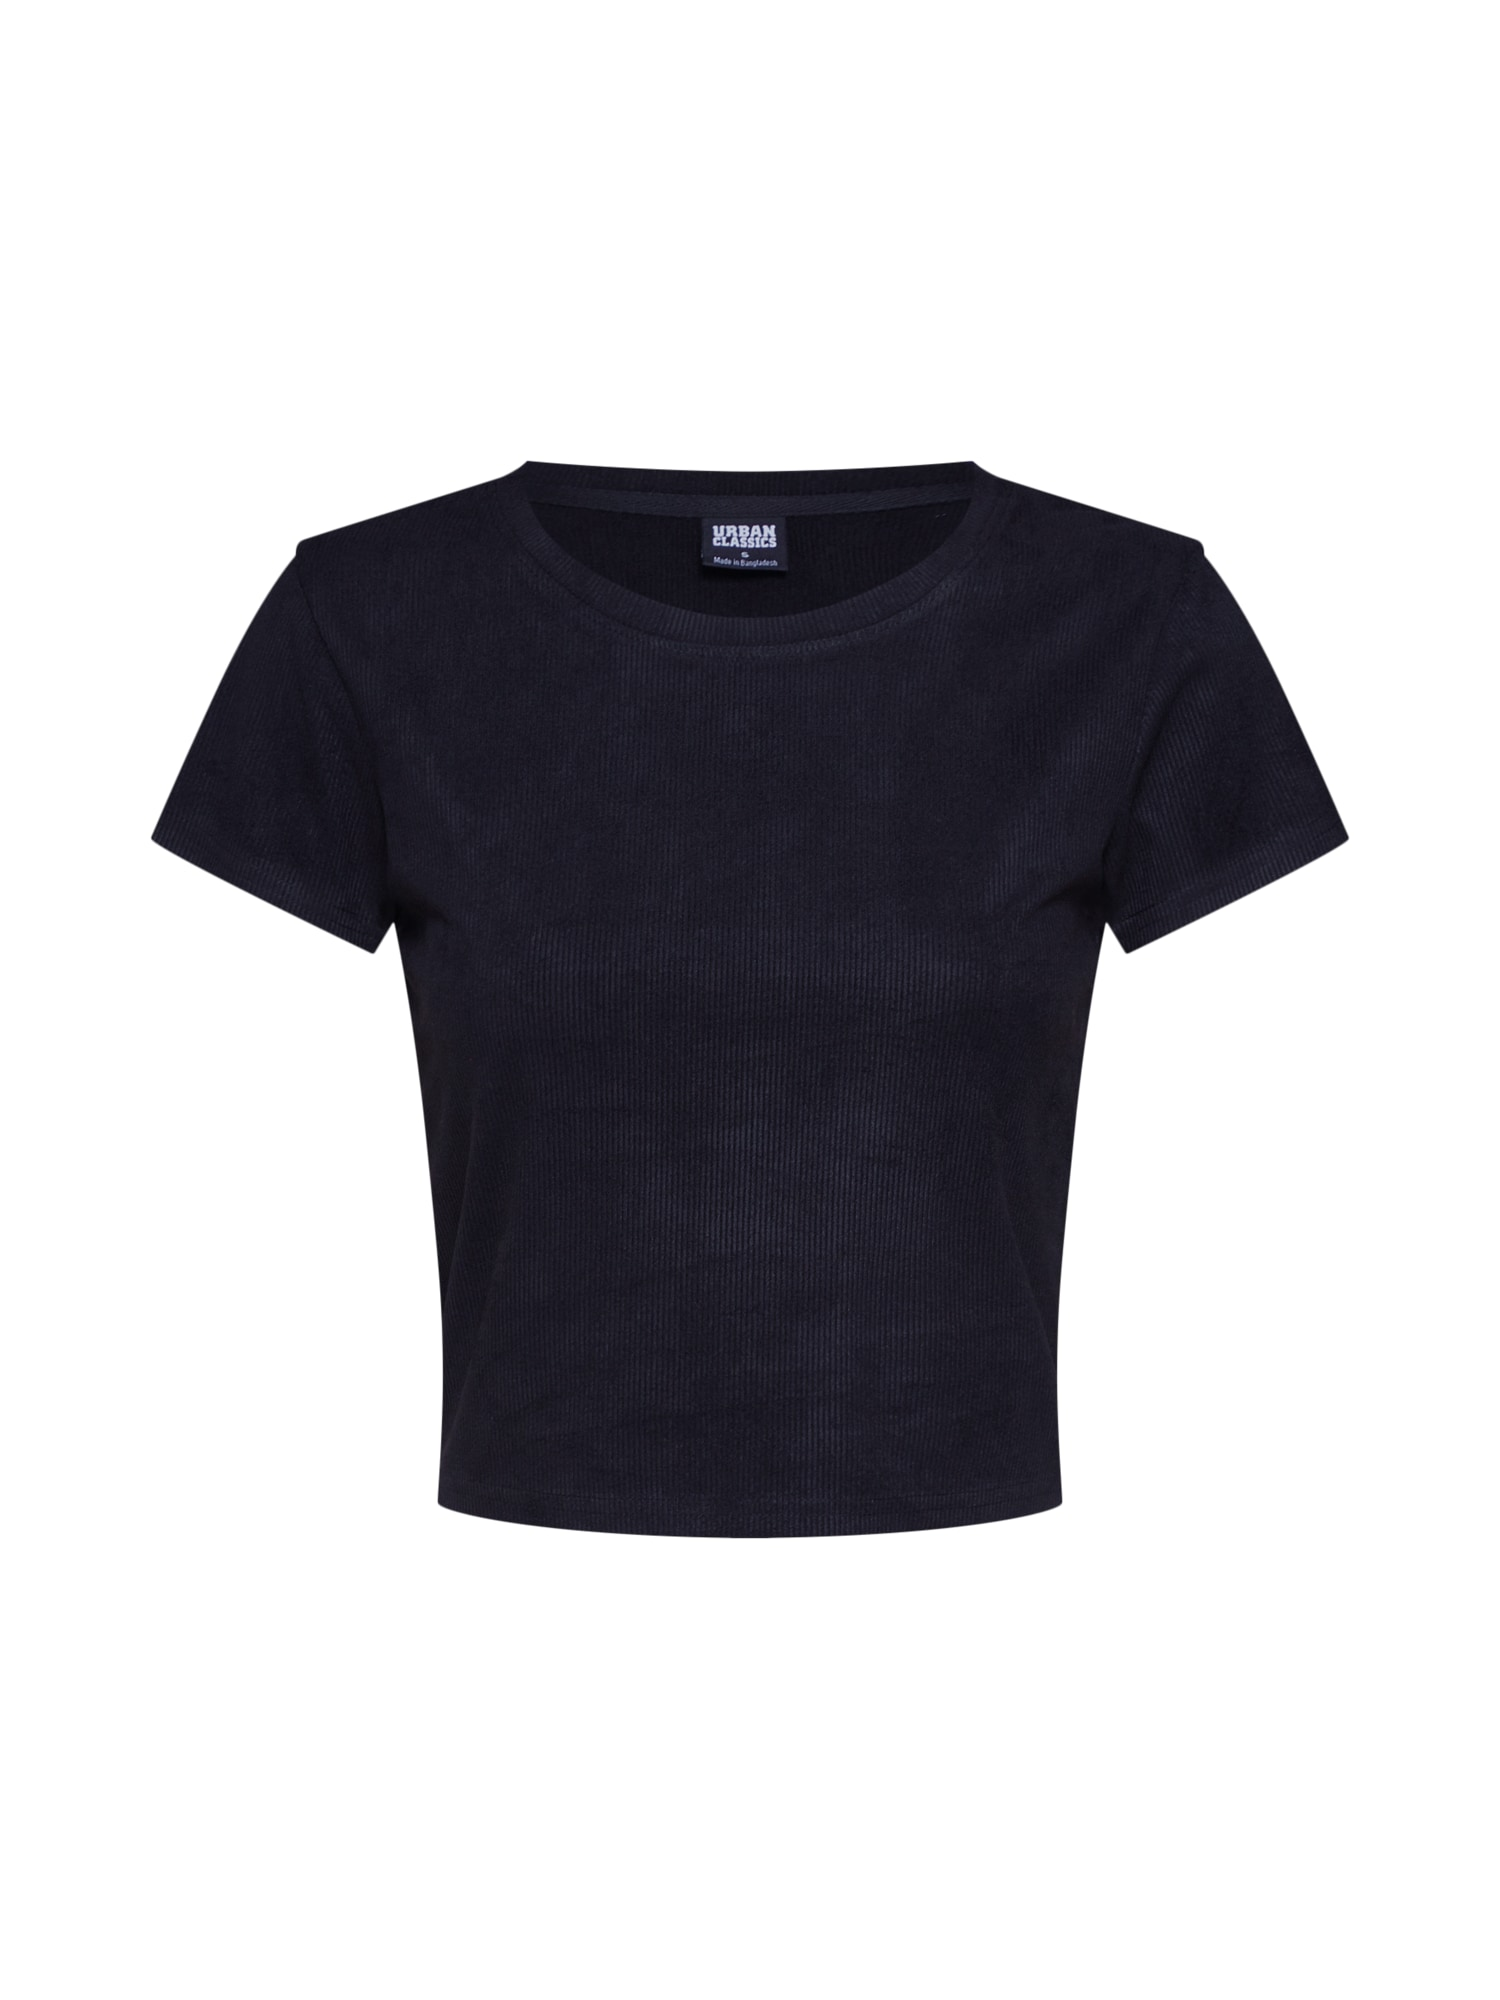 Urban Classics Tričko 'Ladies Cropped Peached Rib Tee'  čierna